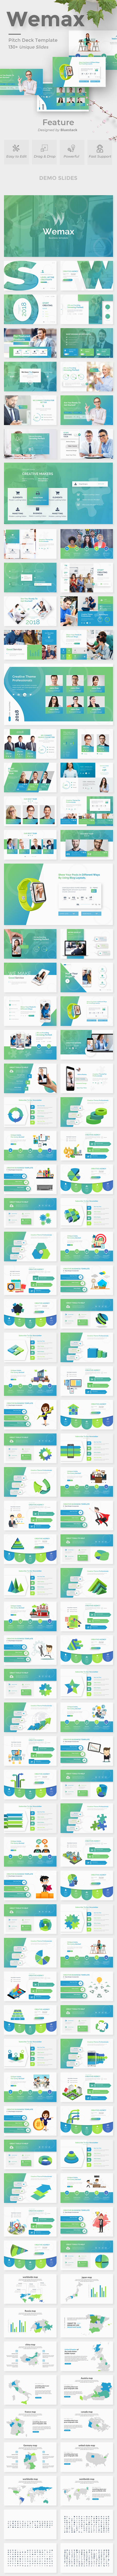 Wemax Pitch Deck Business Powerpoint Template - Business PowerPoint Templates